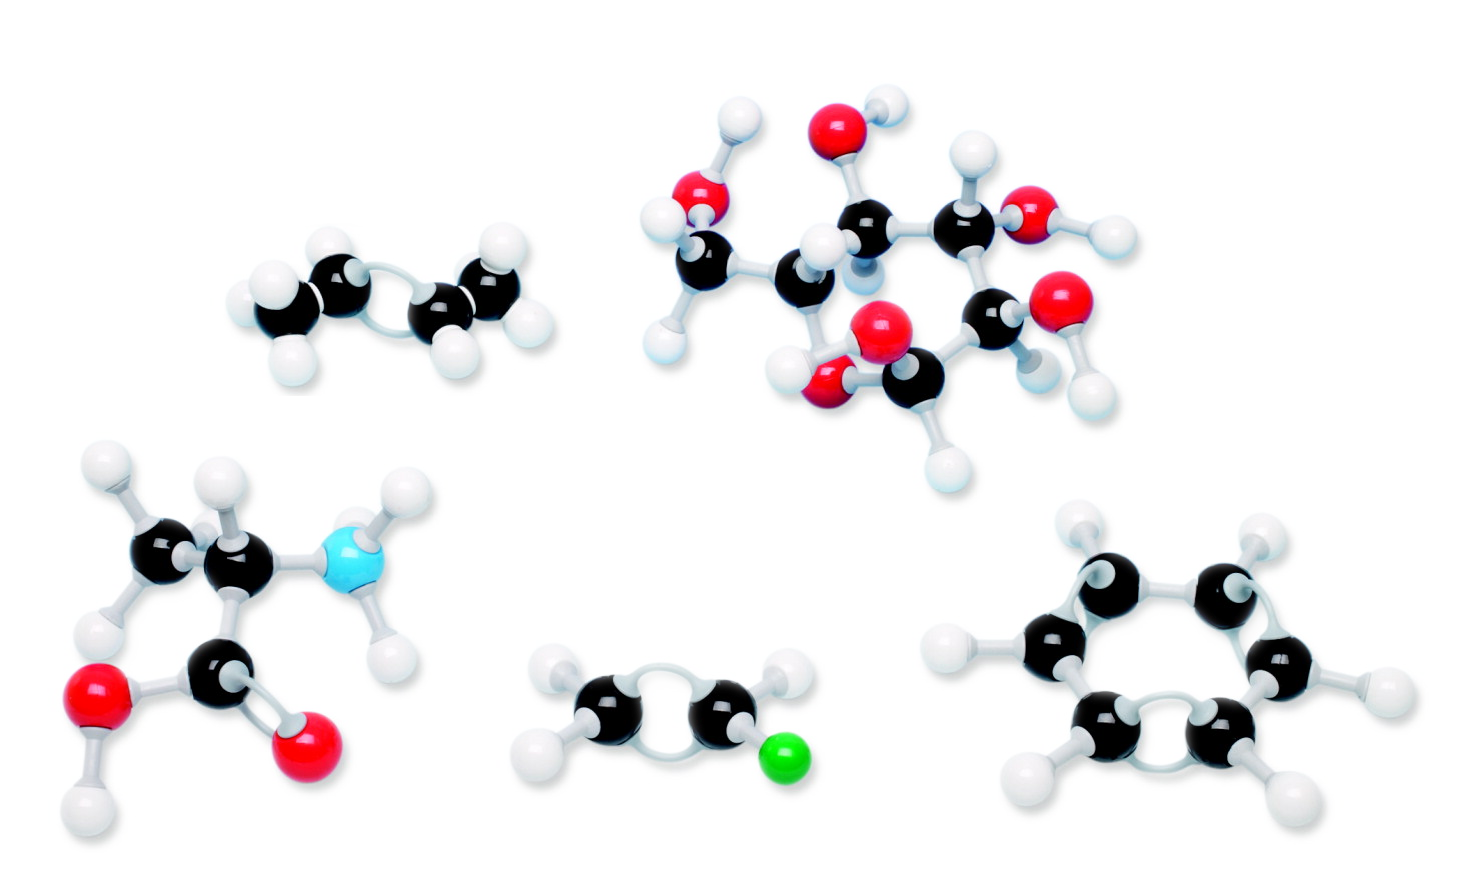 Organic molecules constructed using a molecular model kit